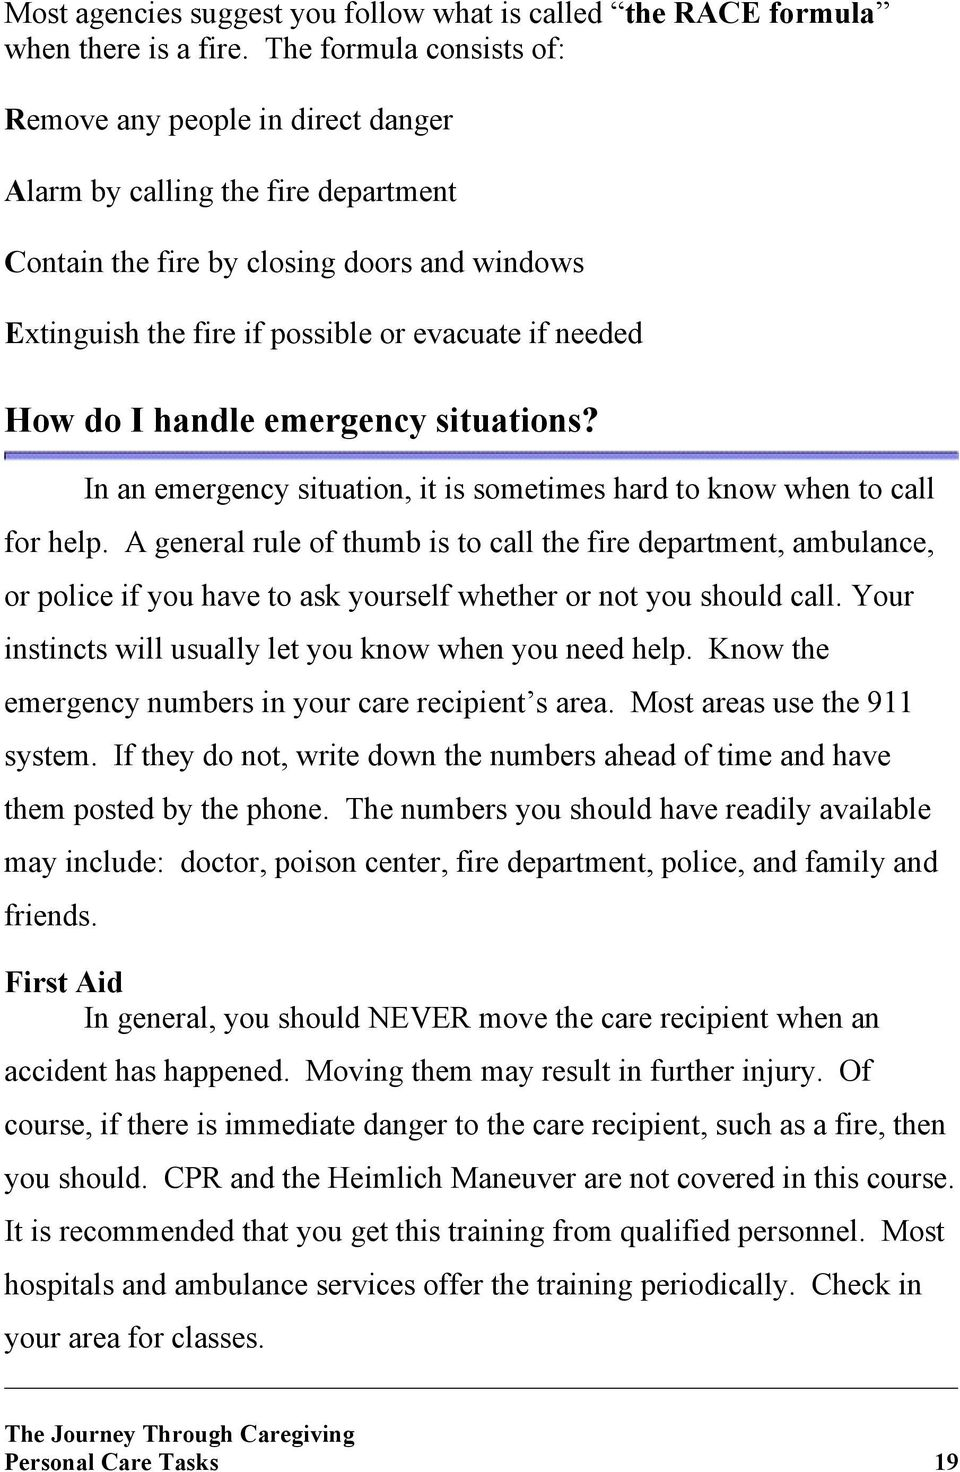 How do I handle emergency situations? In an emergency situation, it is sometimes hard to know when to call for help.